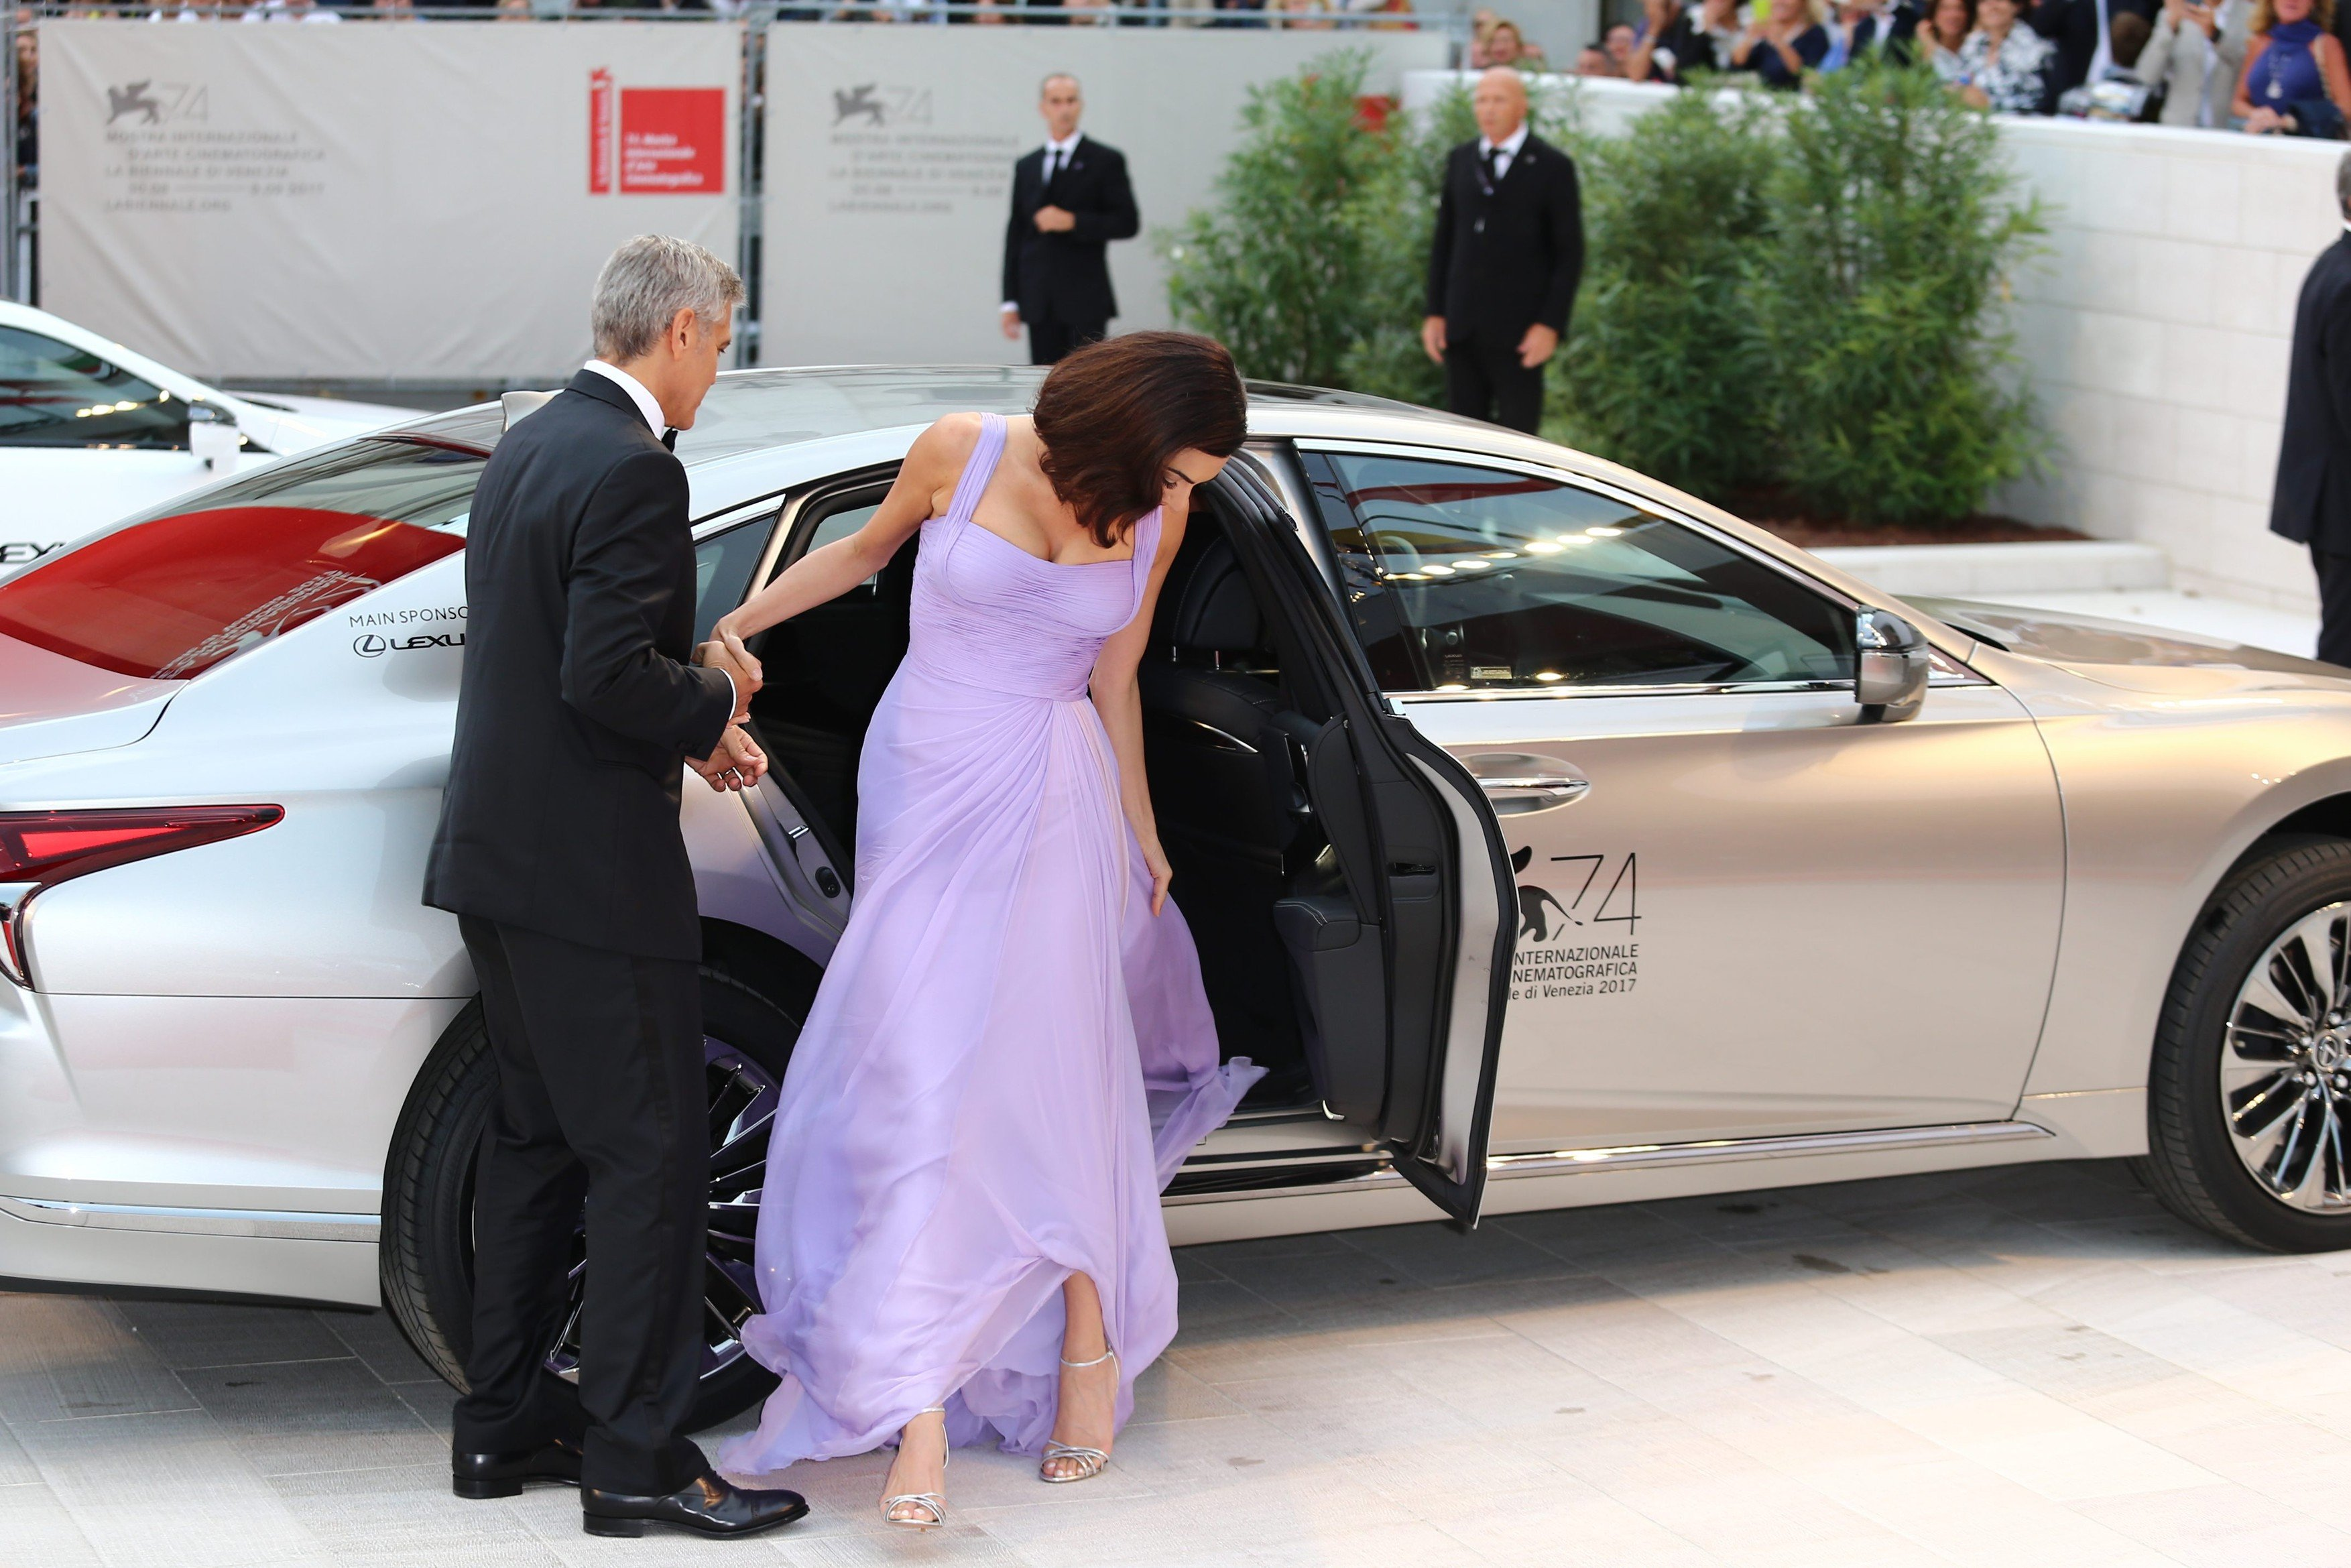 ; Actors Matt Damon with Luciana Barroso and Julianne Moore with US Director George Clooney and his wife Amal Clooney arrive on the Red Carpet for the screening of the 'Suburbicon' photocall during the 74th Venice Film Festival on September 2, 2017 in Venice, Italy Pictured: George Clooney, Amal Clooney, Image: 348123229, License: Rights-managed, Restrictions: , Model Release: no, Credit line: Profimedia, MAXPPP